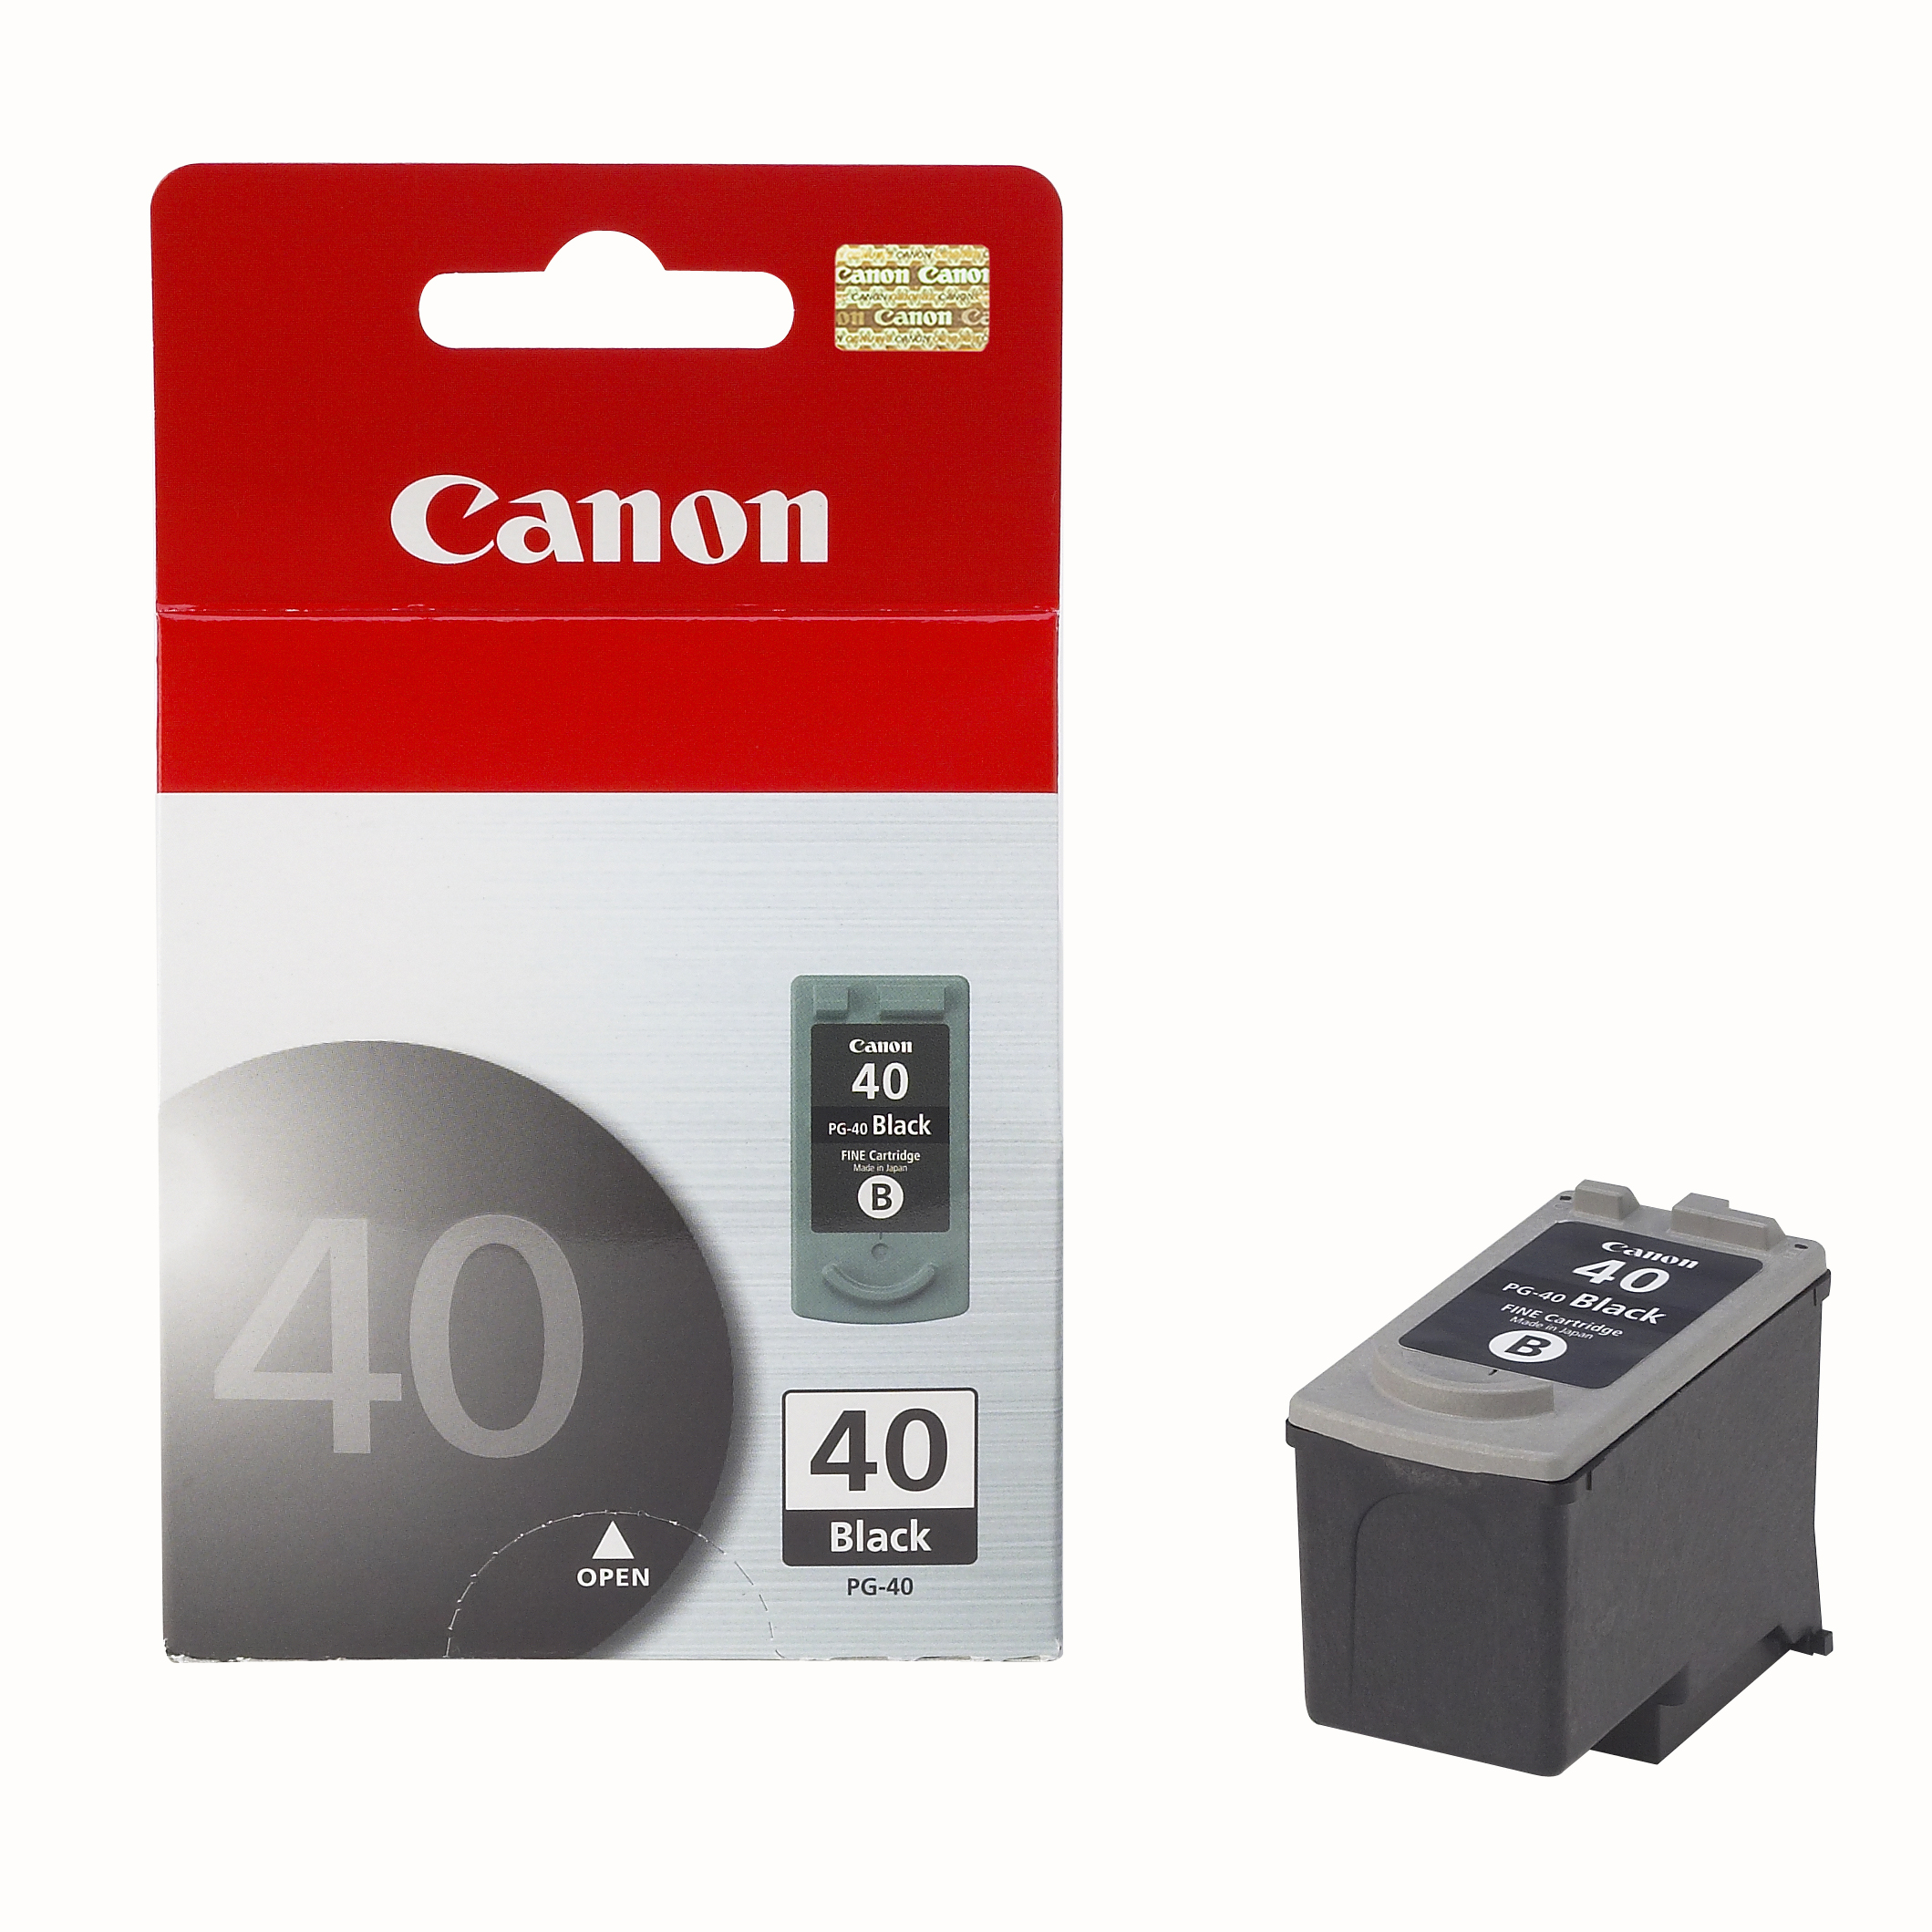 Canon PG-40 Black Inkjet Print Cartridge